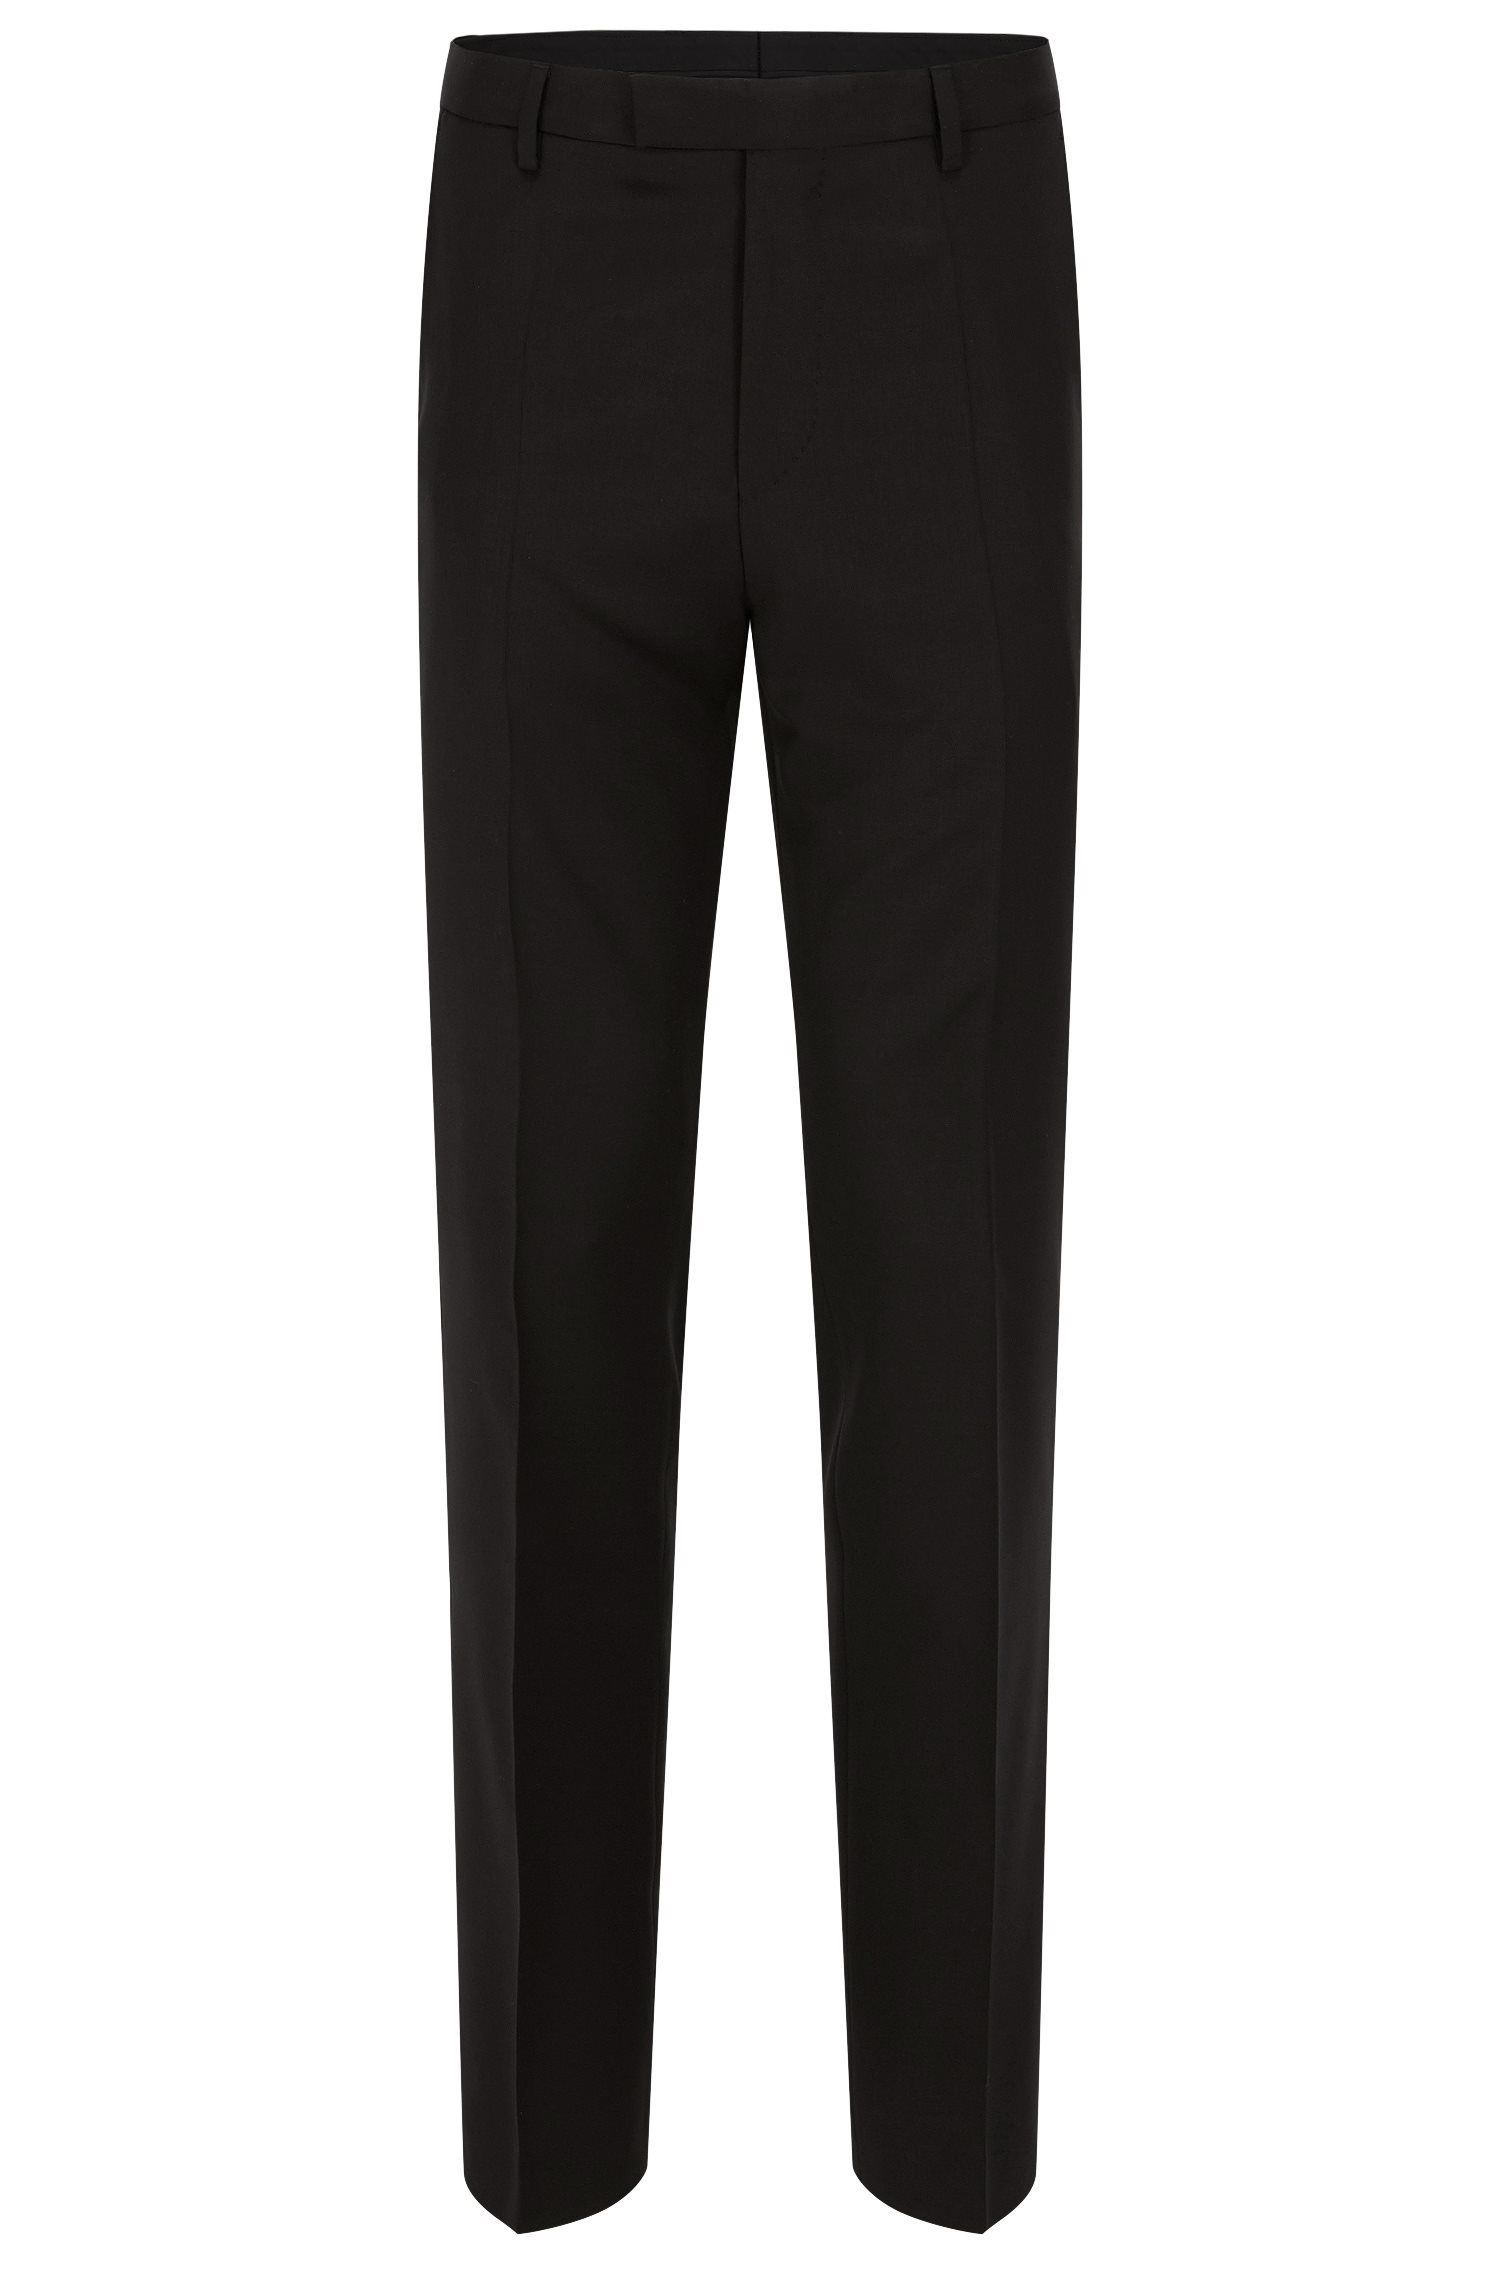 'Lenon Cyl' | Regular Fit, Virgin Wool Dress Pants